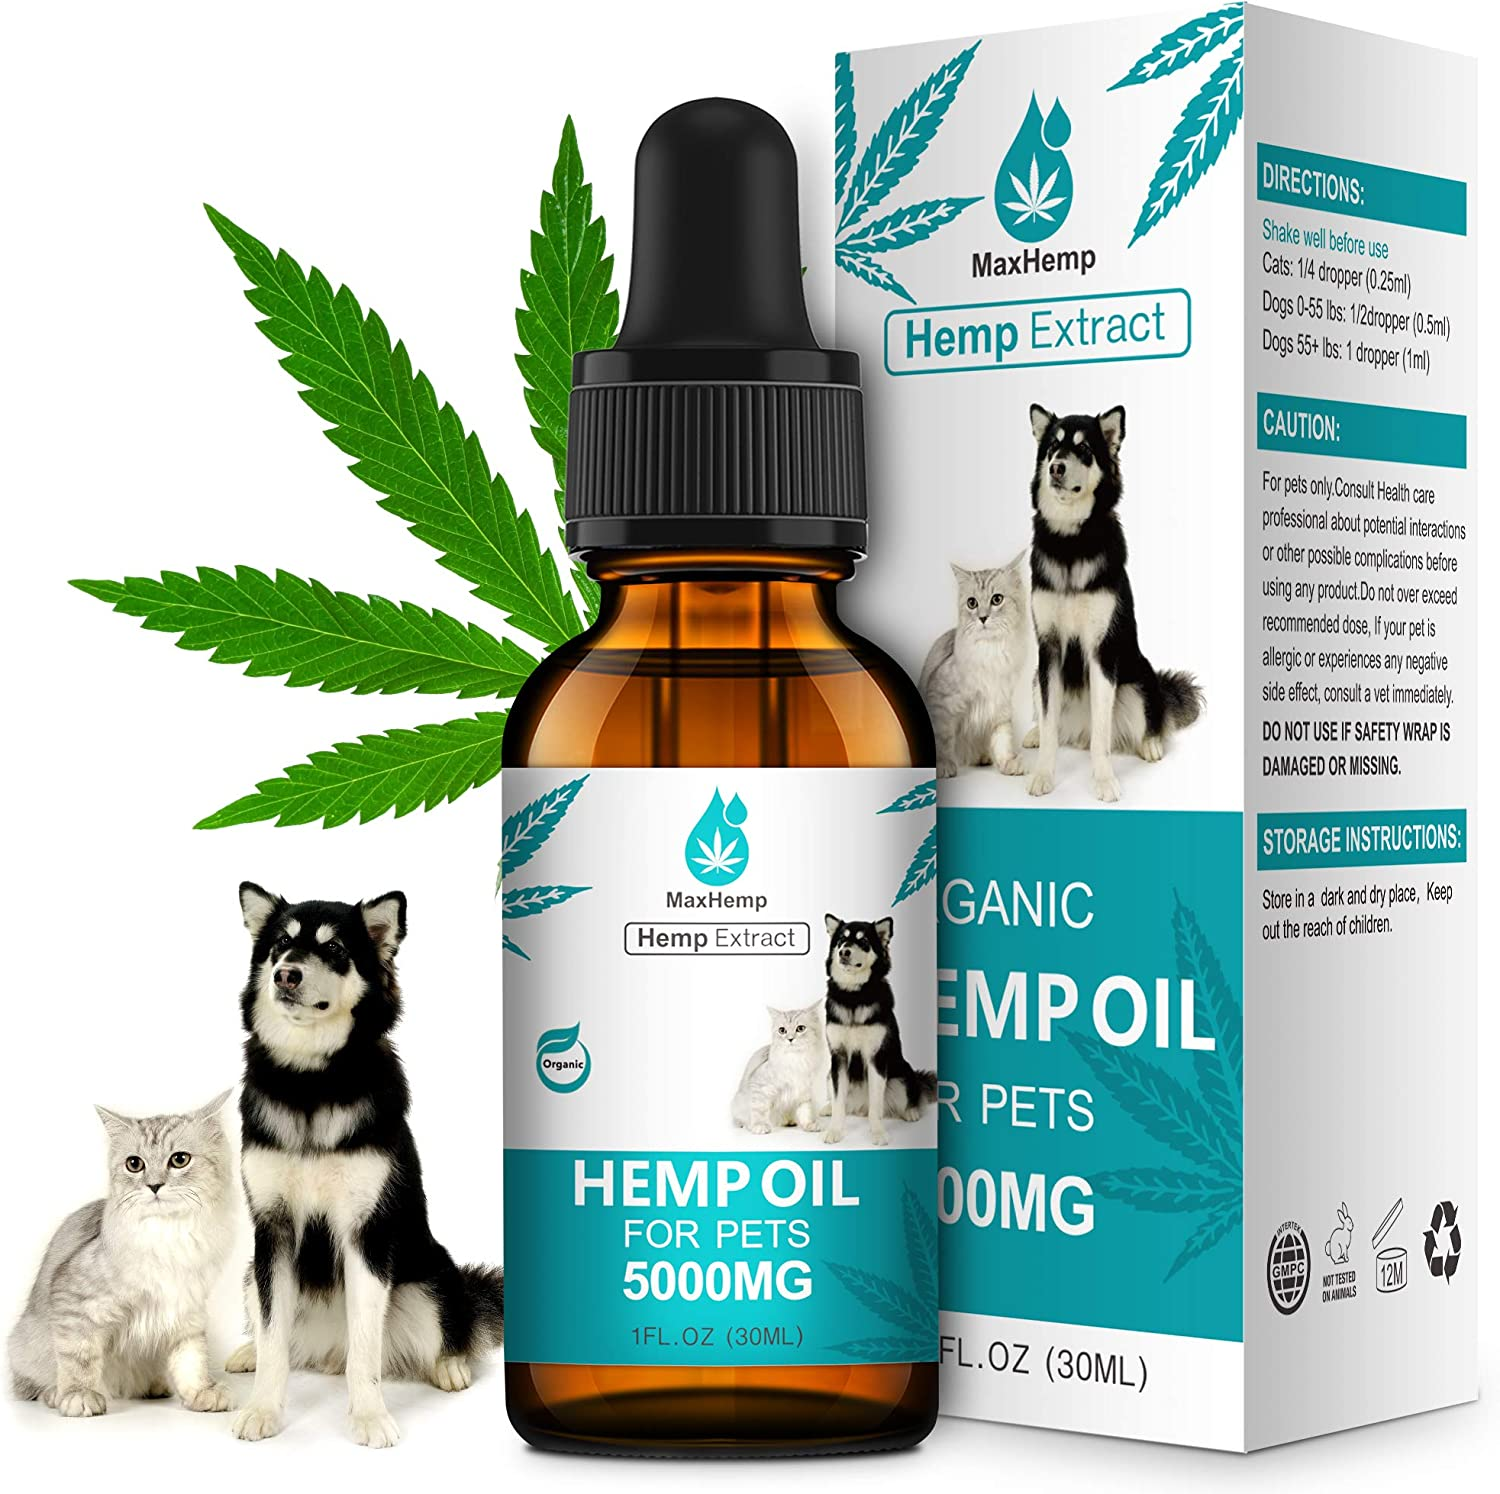 MaxHemp Organic Hemp Oil for Dogs and Cats - Anxiety and Pain Relief - Mind Calming - Supports Hip & Joint Health - 100% Natural, Non-GMO